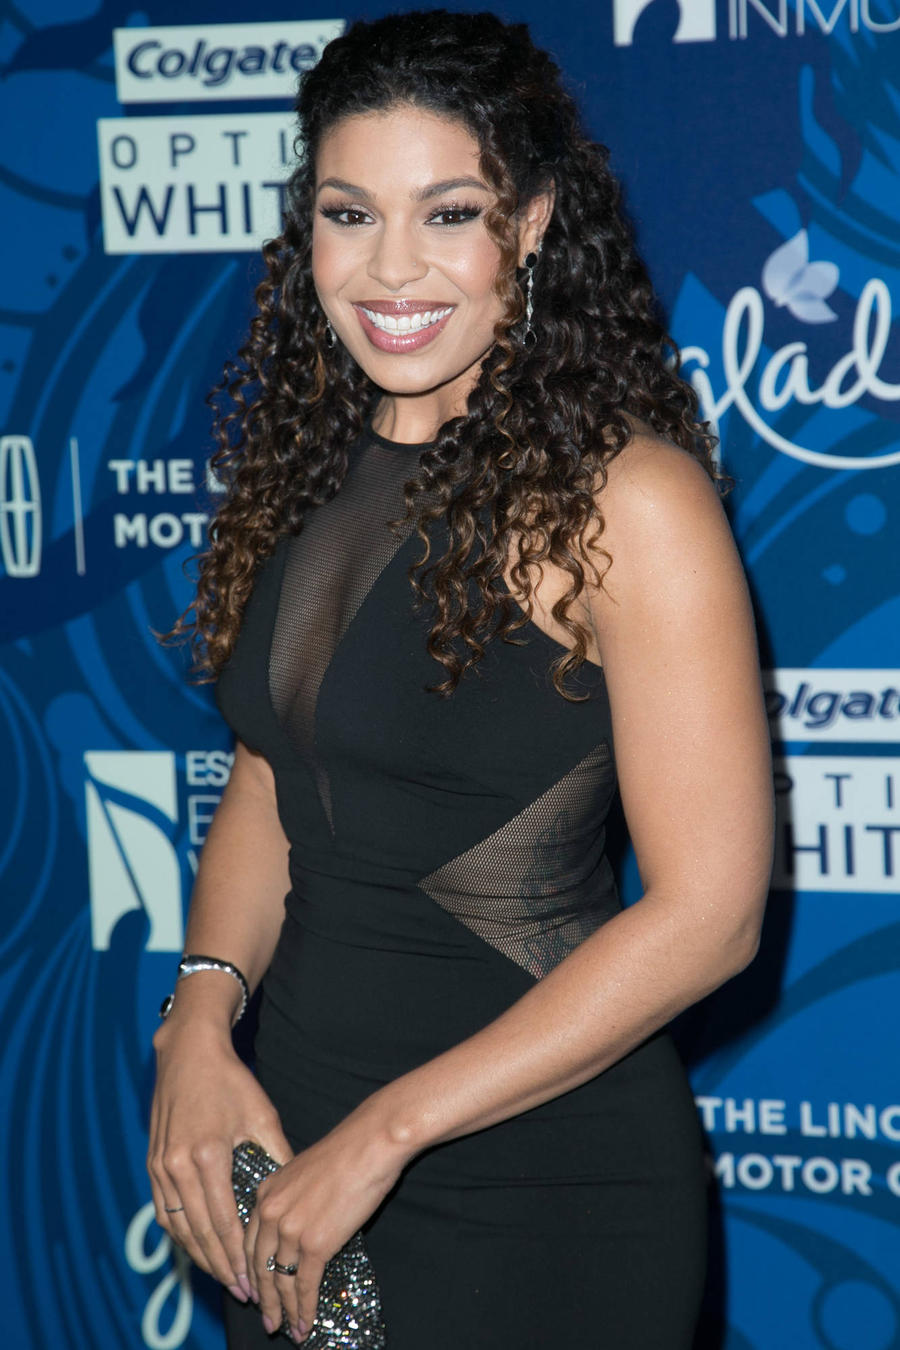 Jordin Sparks And Sage The Gemini Split - Report